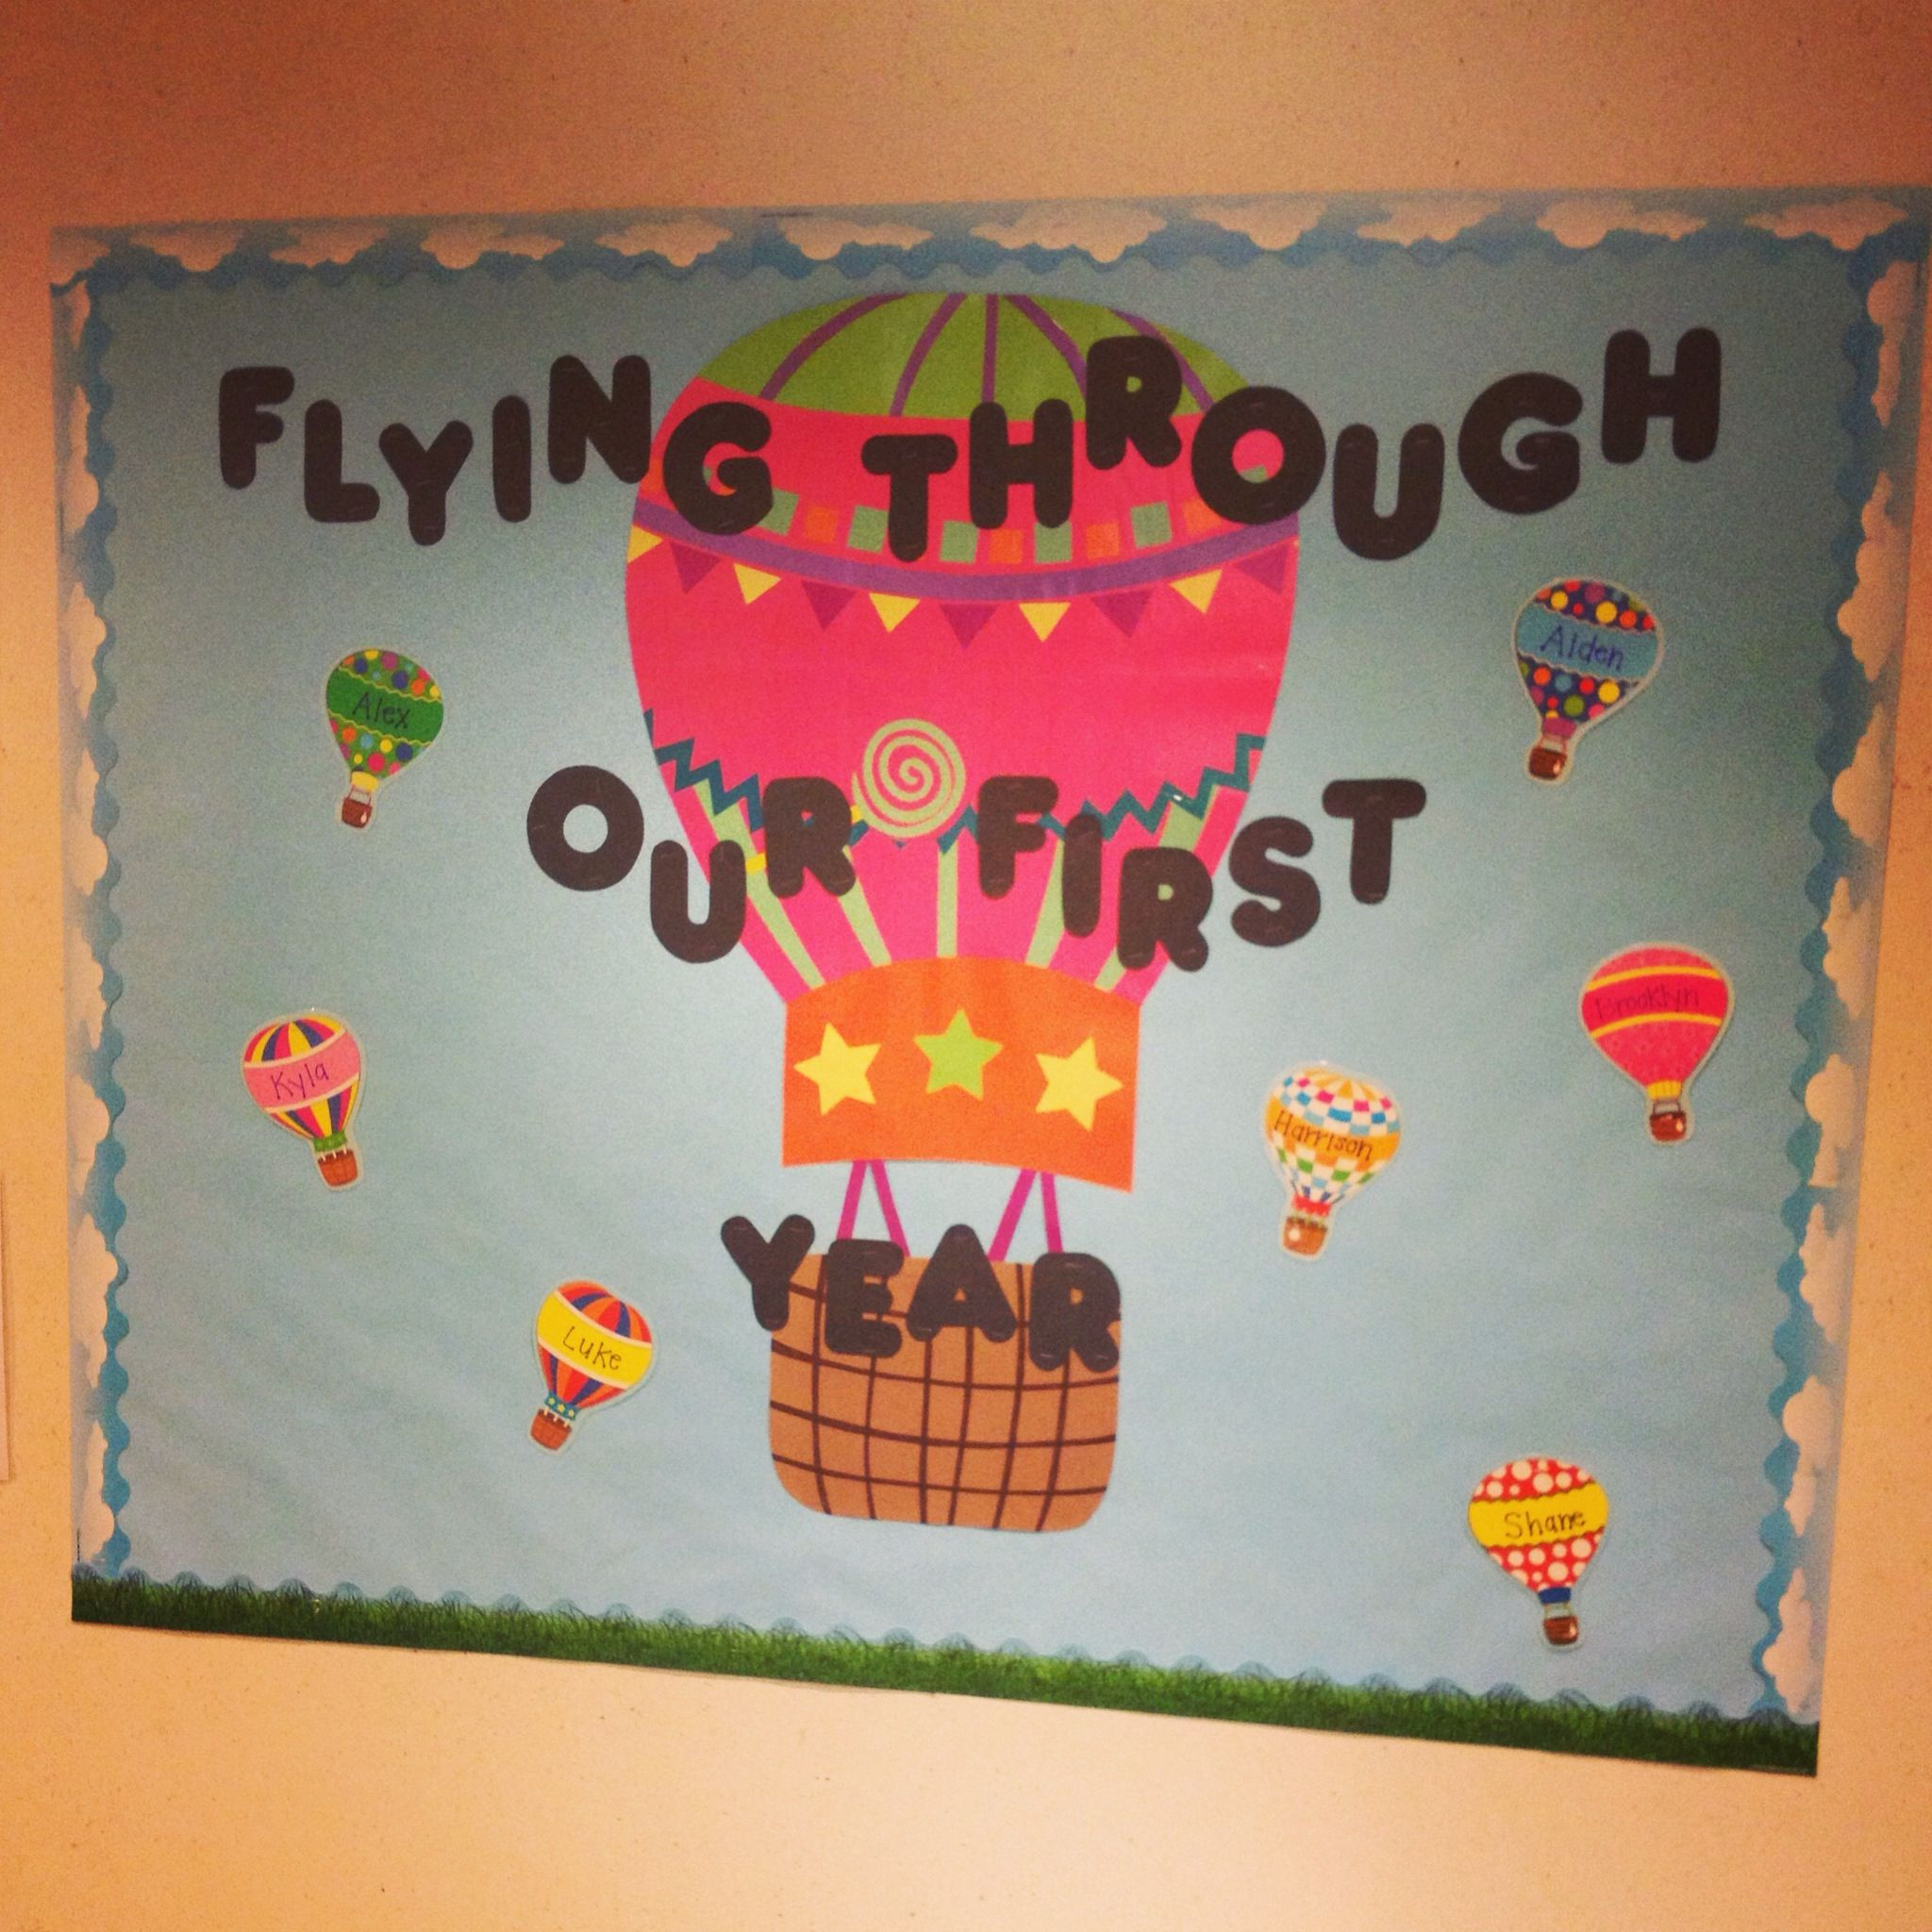 Good bulletin board for an infant room. Flying through our first